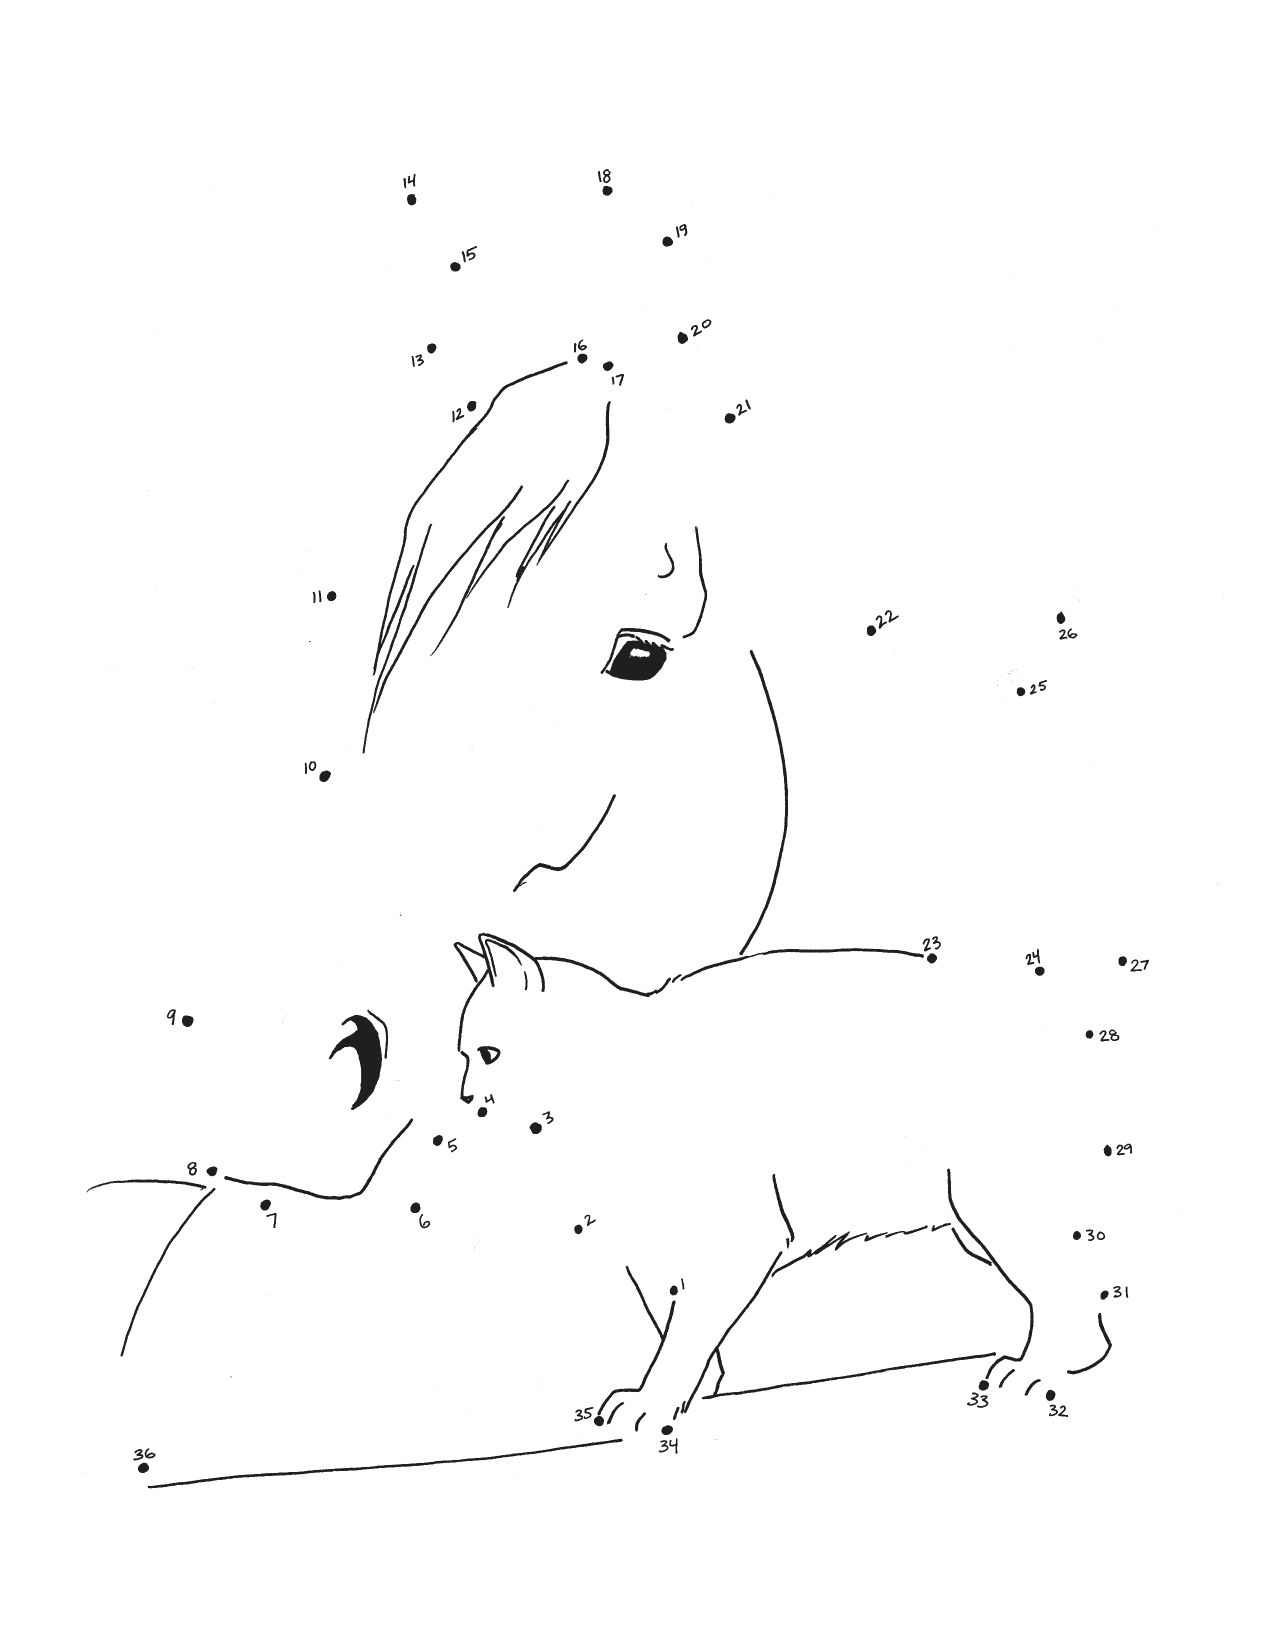 Connect The Dots   Coloriage Cheval, Dessin Chat, Jeux Coloriage à Jeux De Dessin De Chat